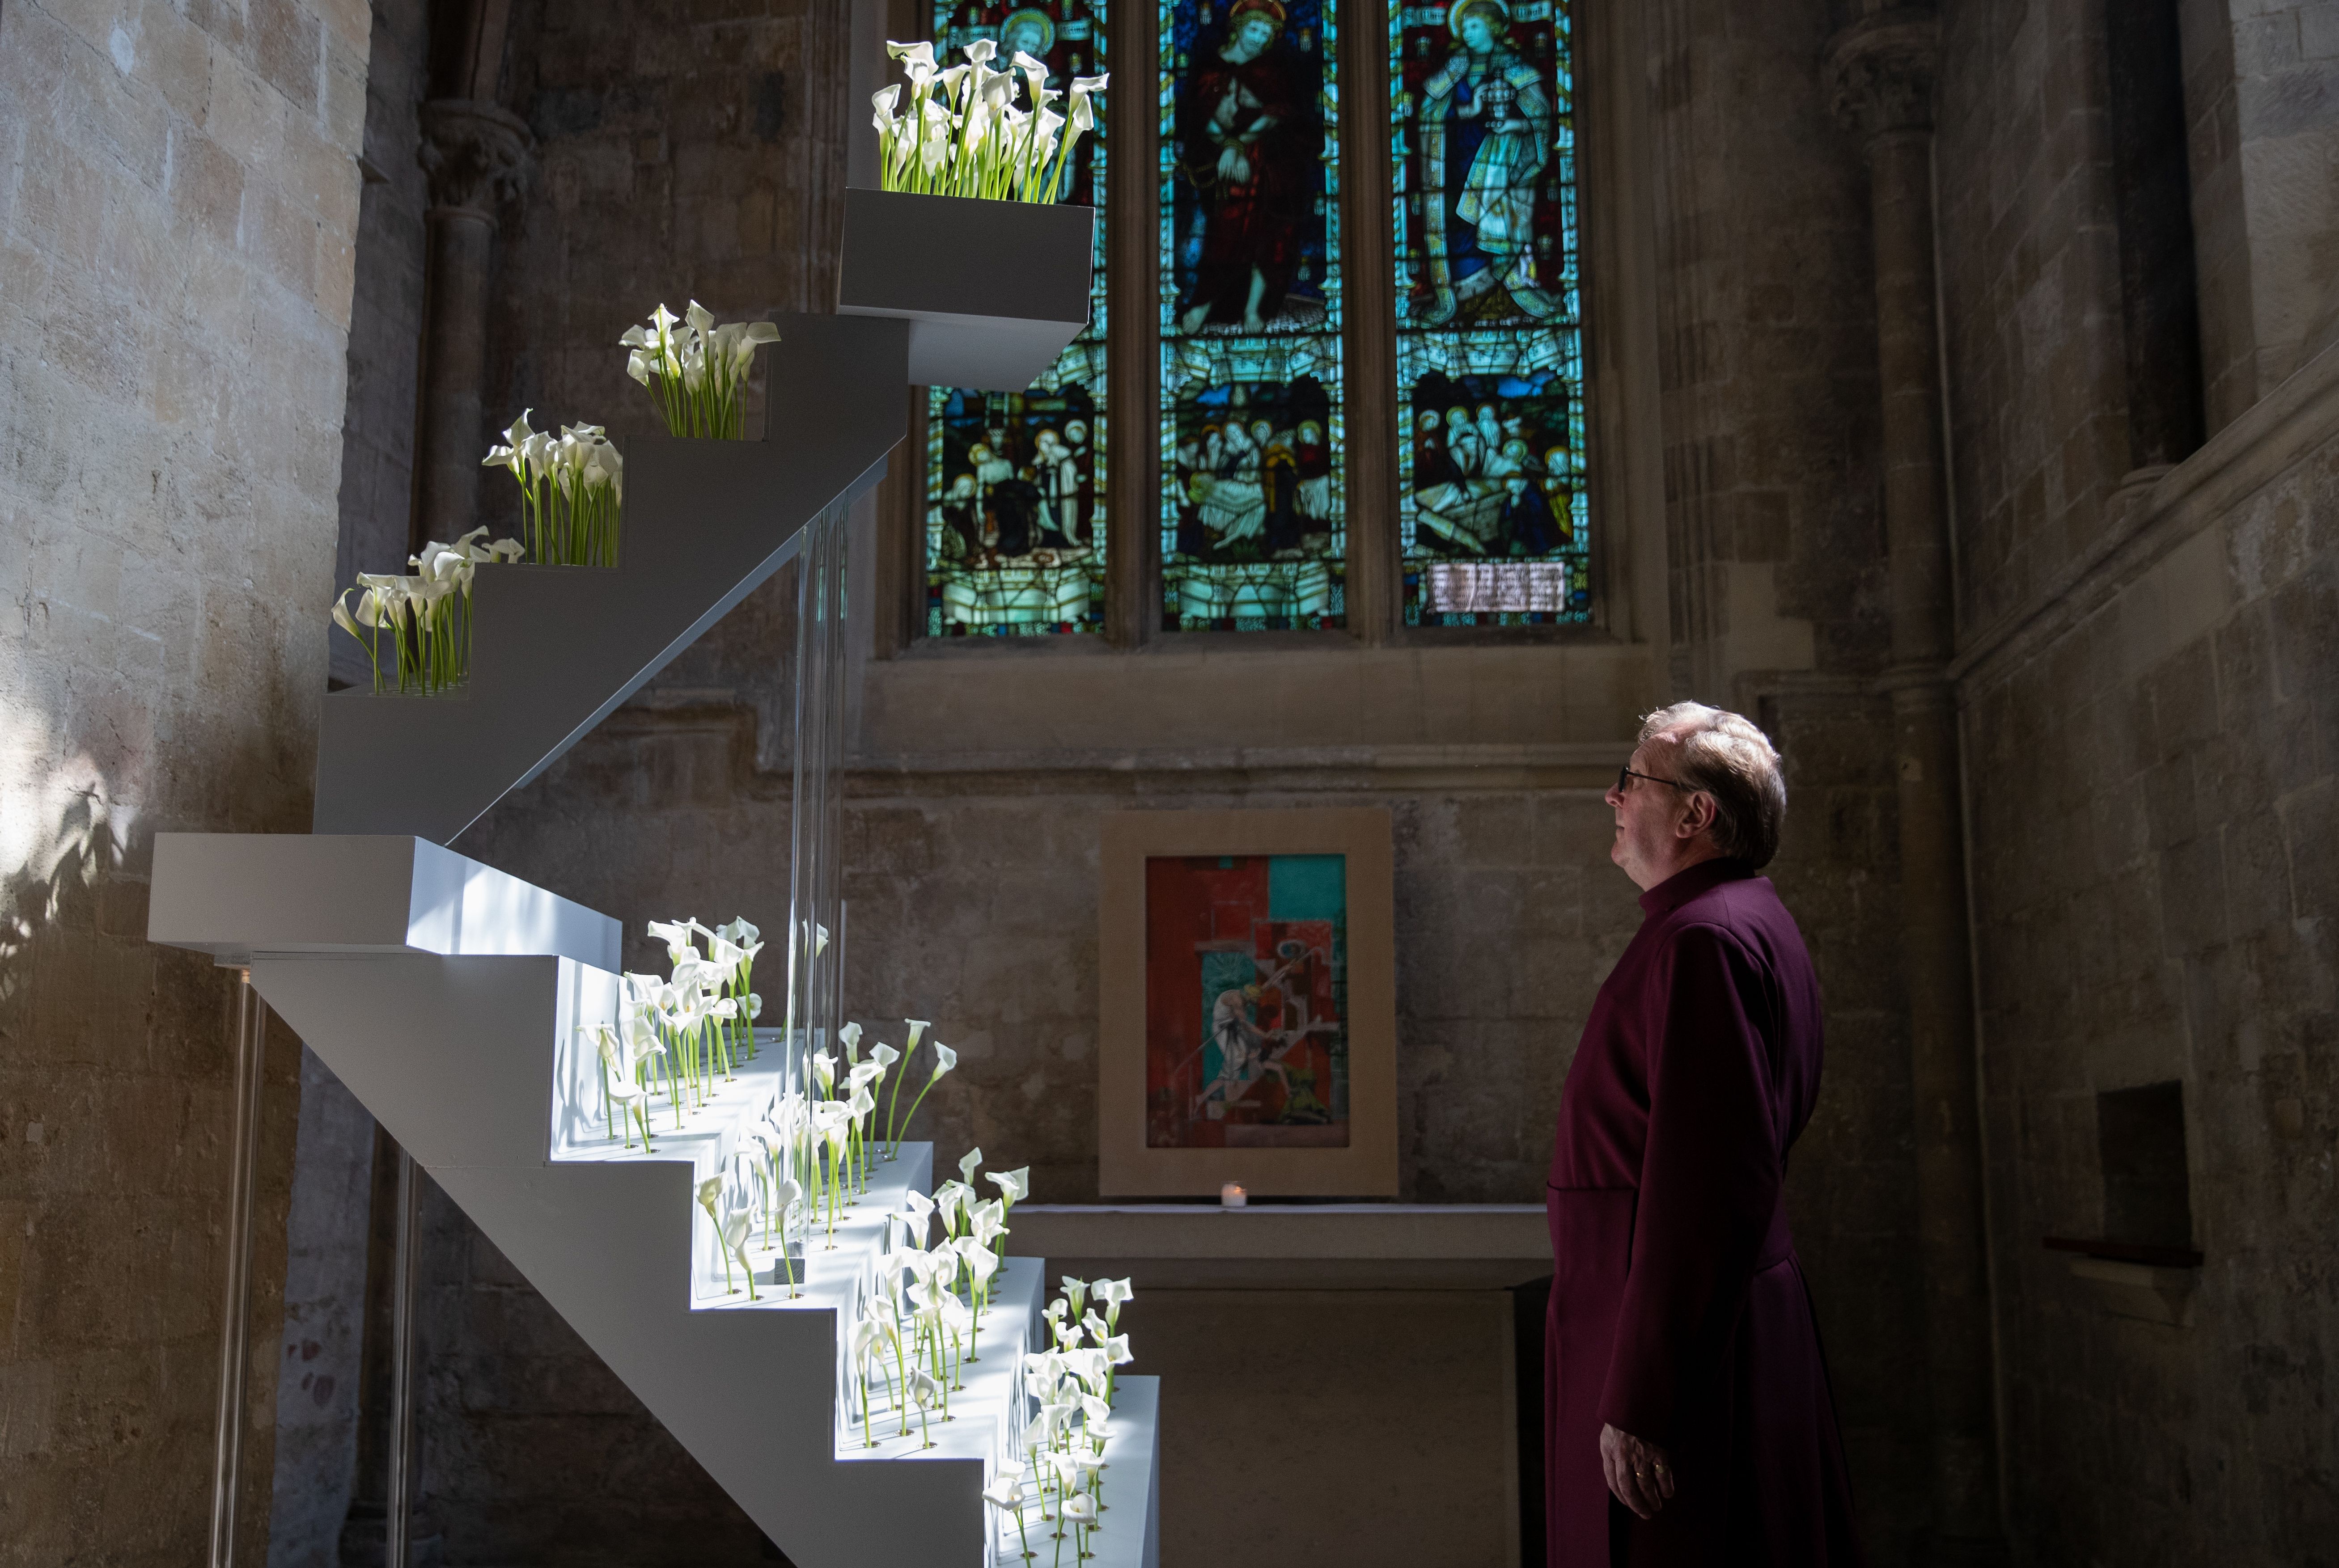 <p>Head verger Howard Waddell looks at a floral installation made with calla-lilies in the Mary Magdalene Chapel at Chichester Cathedral. Picture date: Sunday April 4, 2021. The structure, mirroring the staircase in Graham Sutherland???s painting 'Noli me Tangere' which is also located in the Chapel, was created to mark the end of Holy Week and the installation will be an opportunity to help people remember those impacted by the coronavirus pandemic.</p>